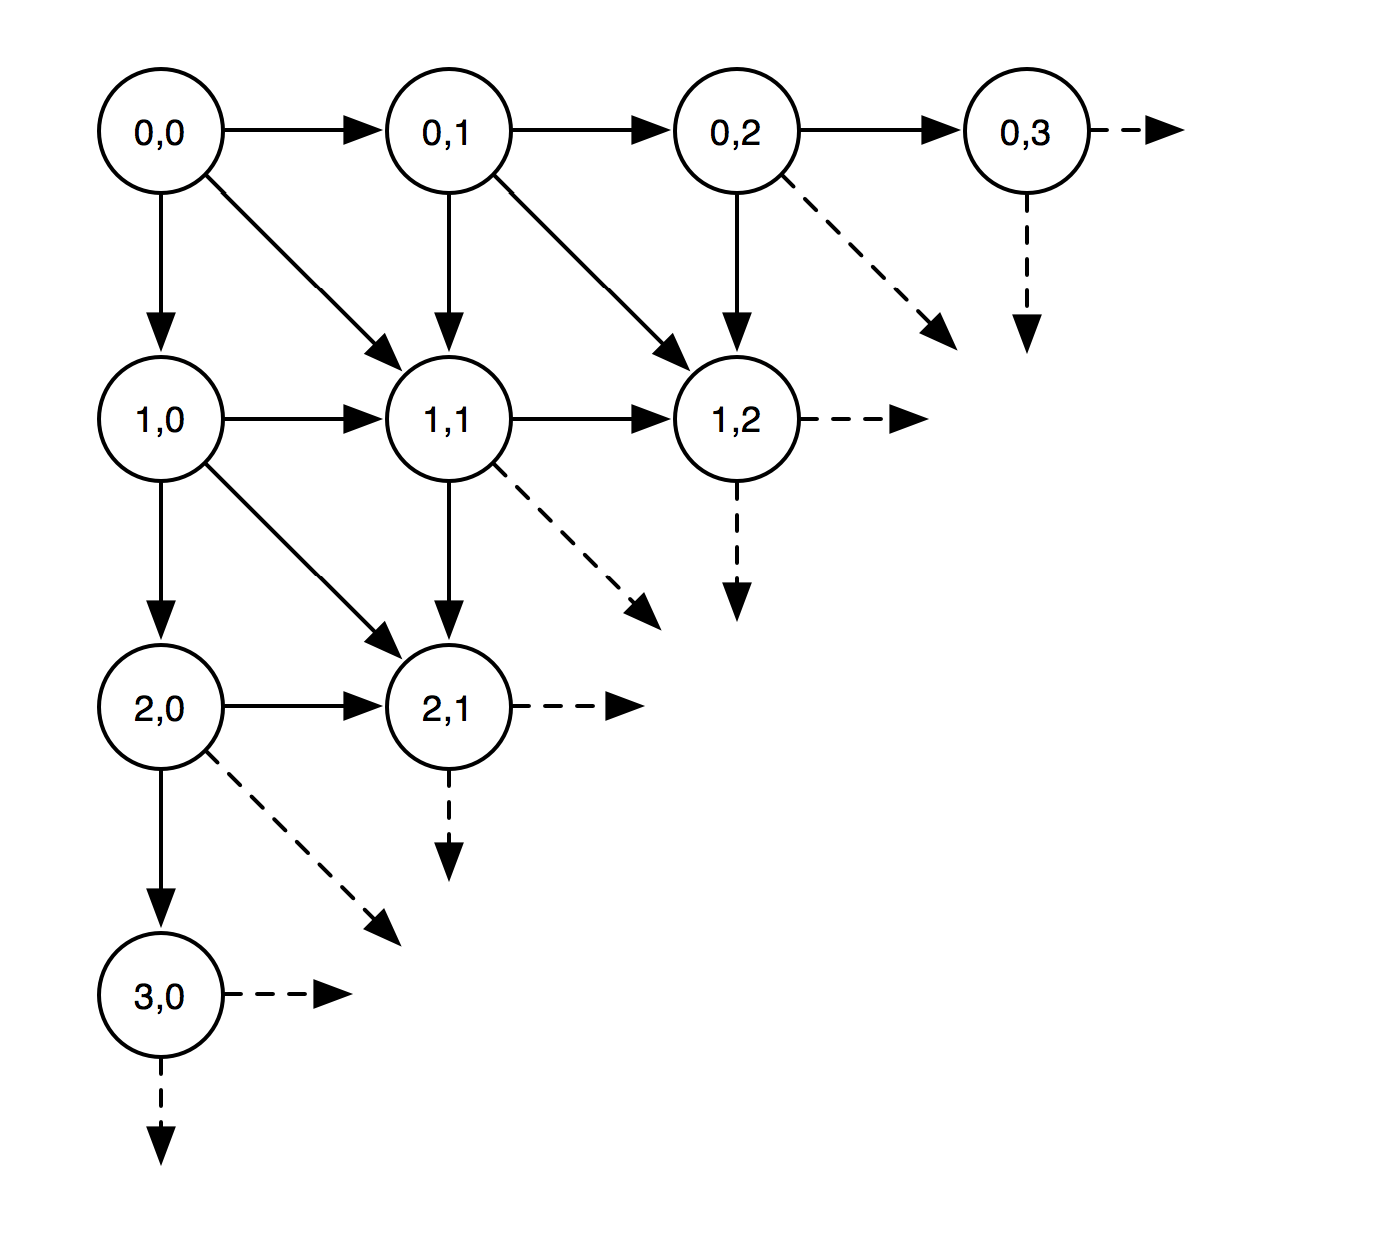 hight resolution of decision tree diagram rotated to be a grid